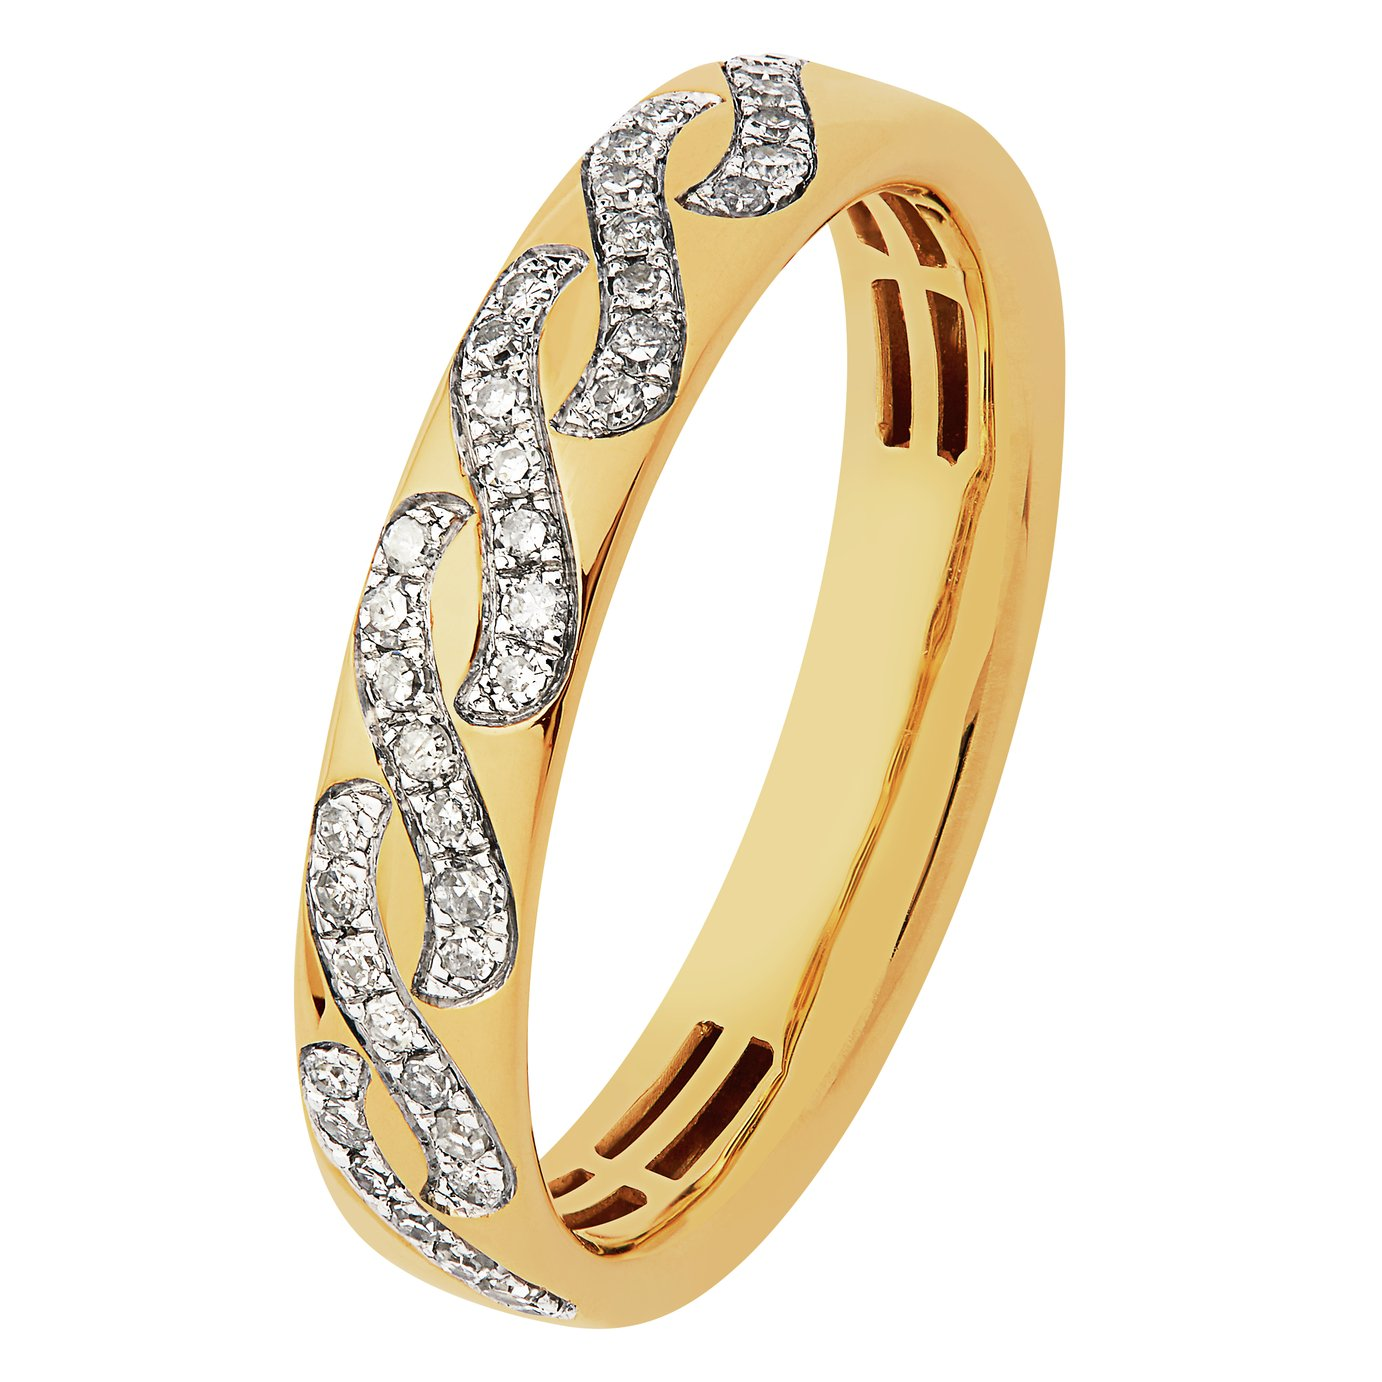 Revere 9ct Gold 0.18ct tw Diamond Wave Band Ring - N